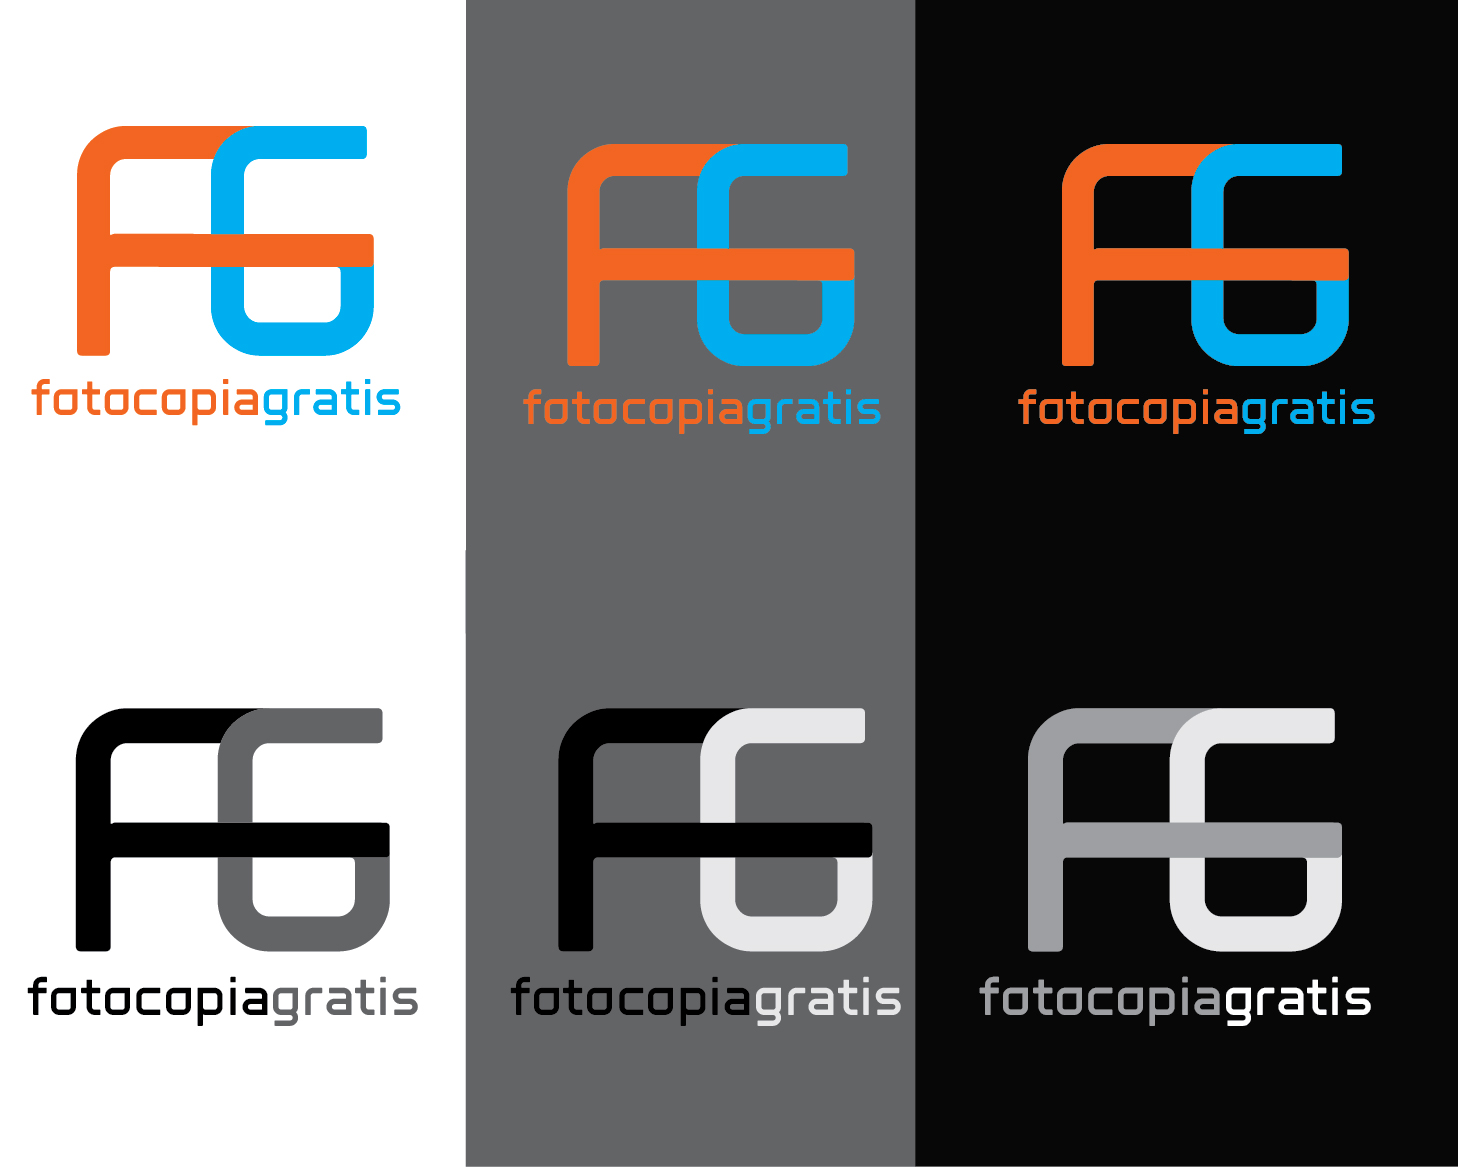 Logo Design by rA - Entry No. 217 in the Logo Design Contest Inspiring Logo Design for Fotocopiagratis.